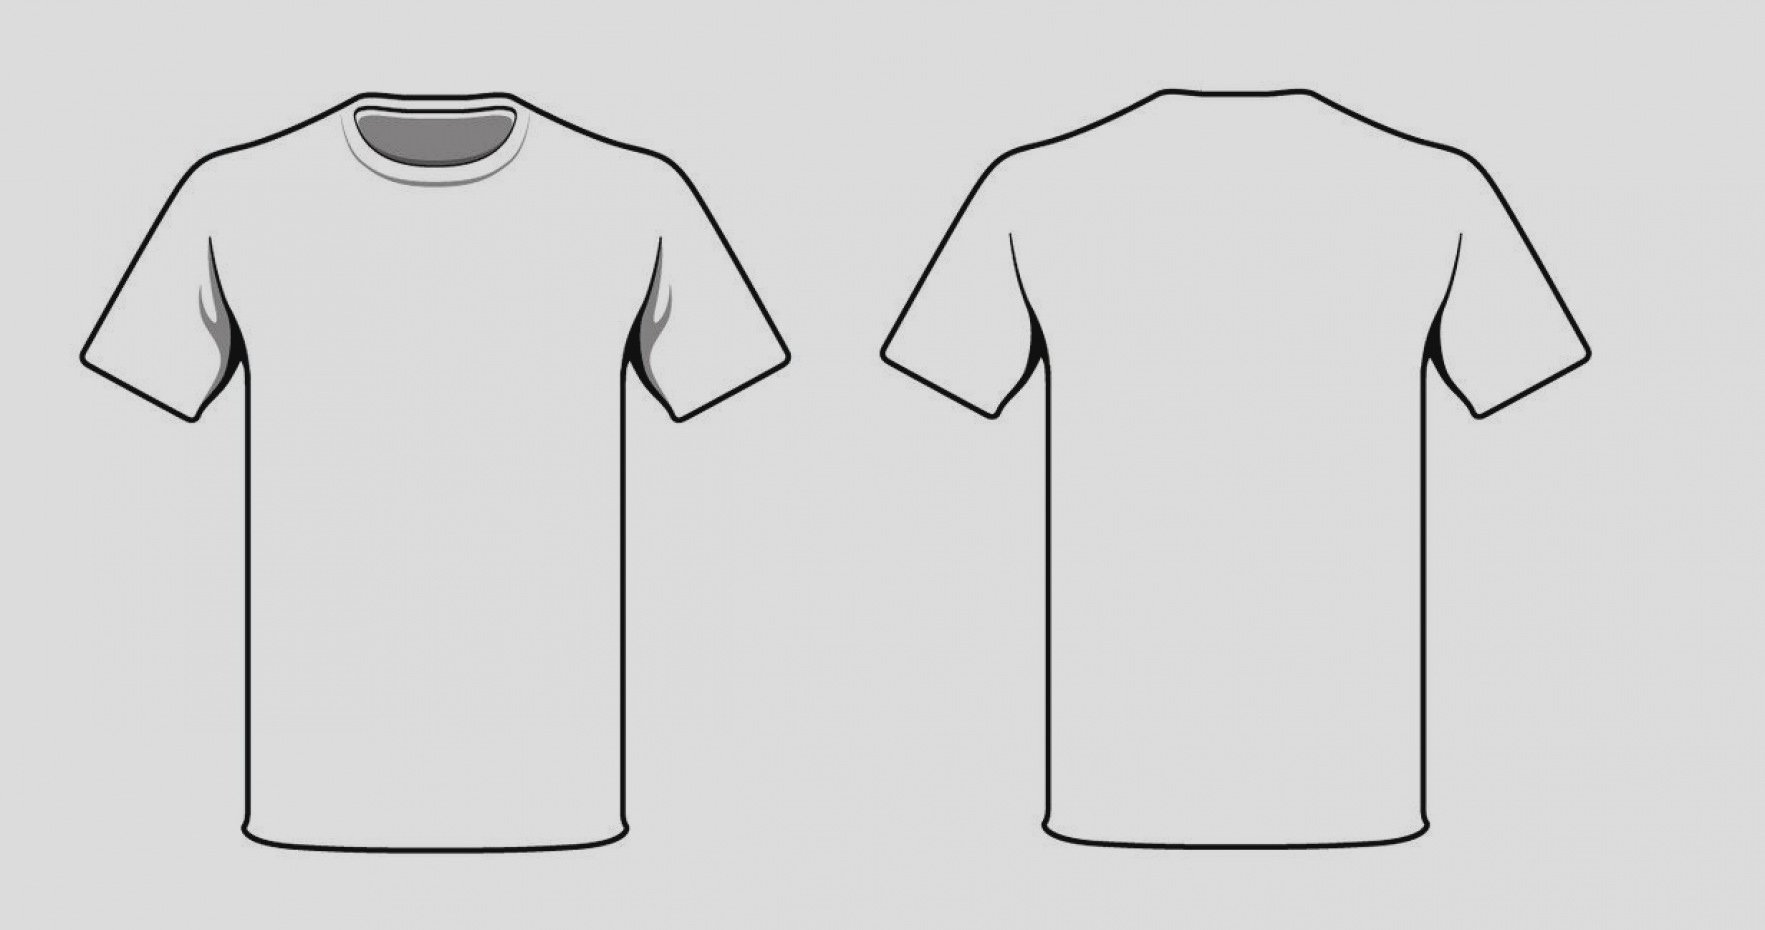 T Shirt Template Pdf Beautiful Templates Styled Aesthetic T Shirt Template Pdf Download